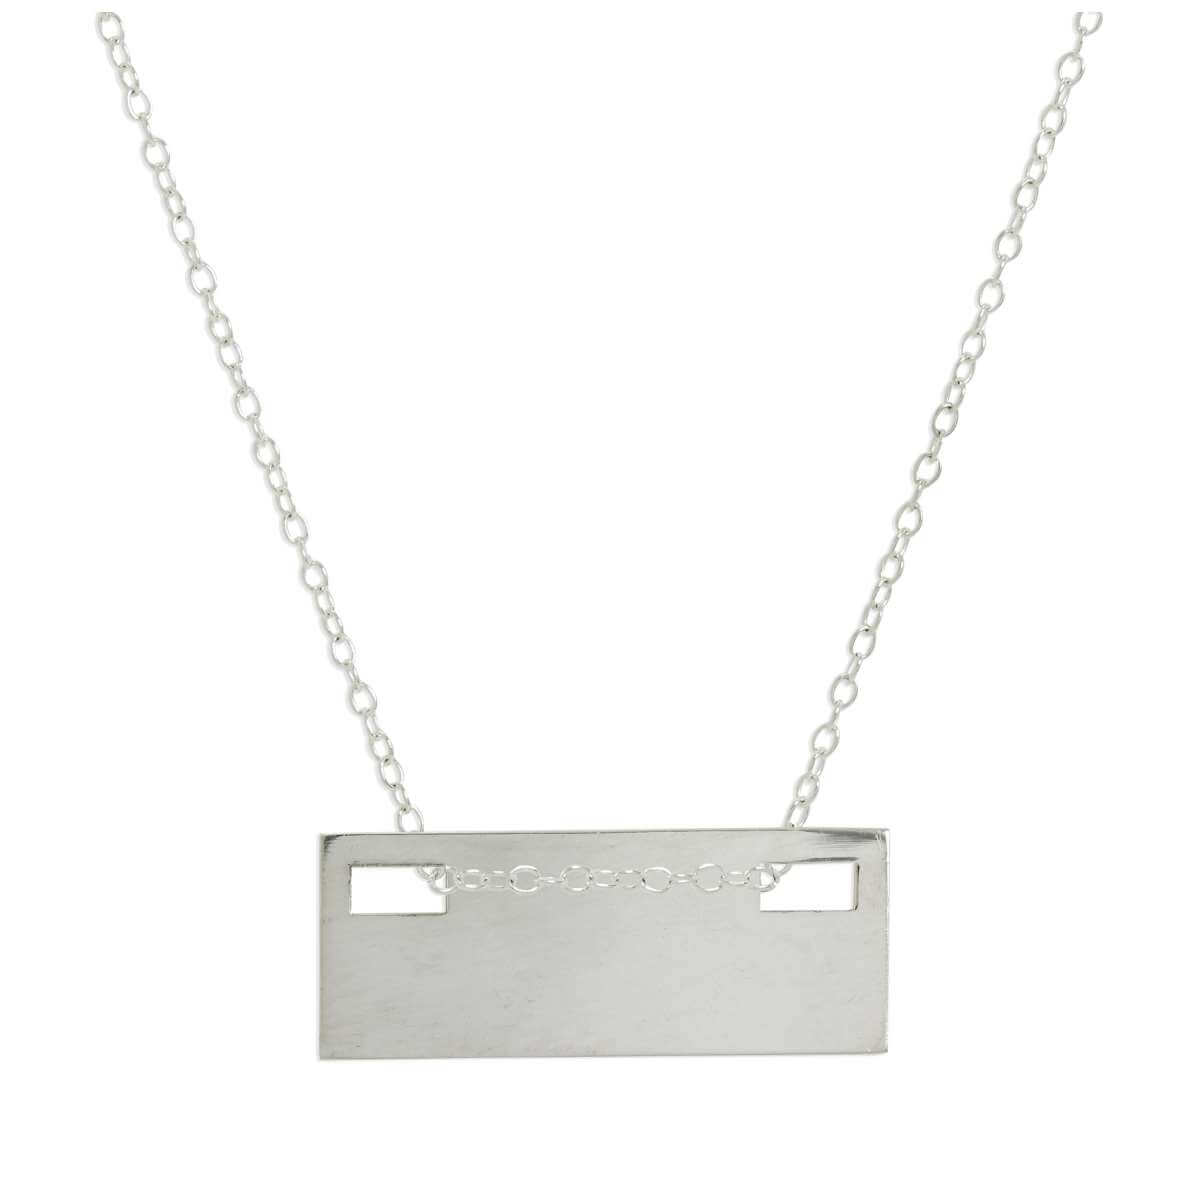 Sterling Silver Engravable Flat Rectangle Pendant Necklace 14 - 22 Inches